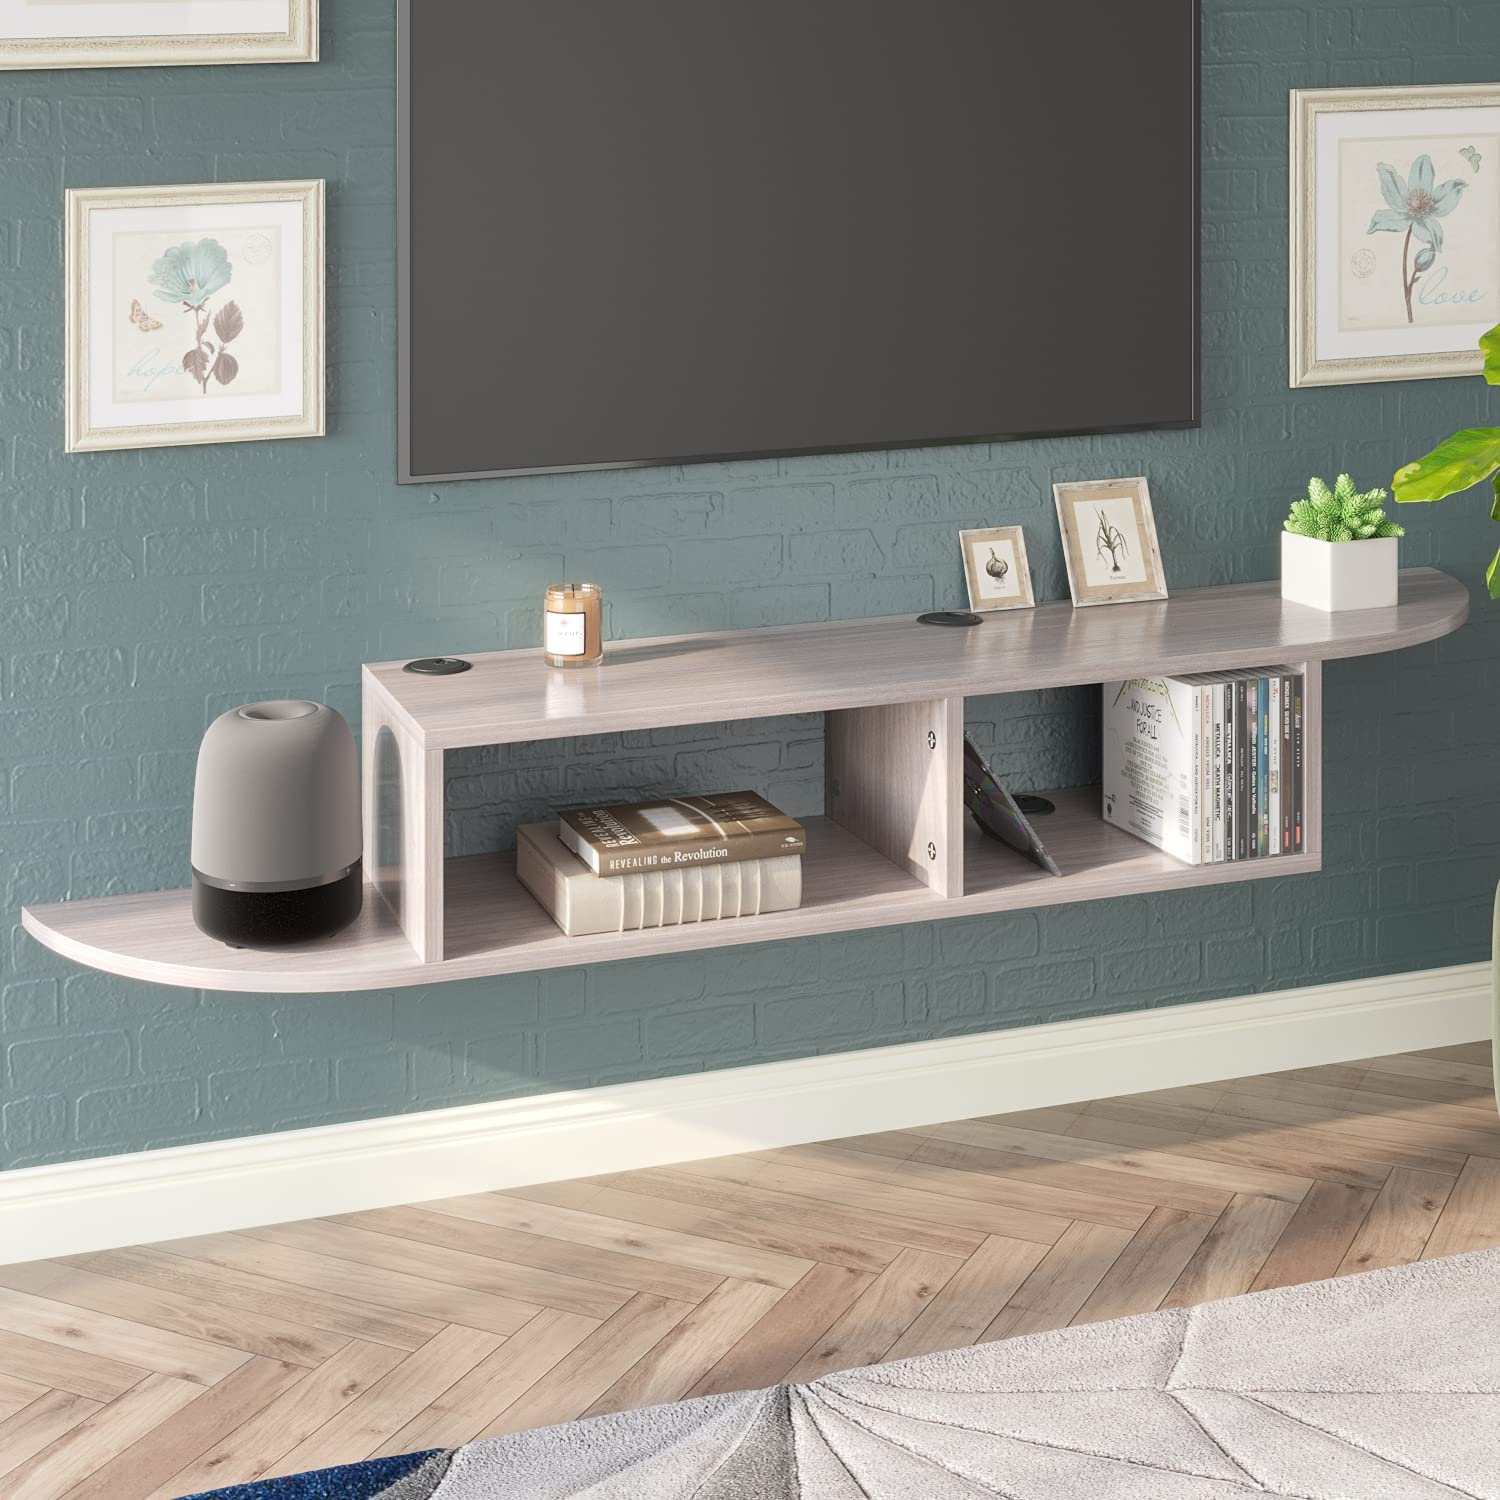 """Wall Mounted TV Stand Entertainment Center TV Shelf, Modern Floating TV Console for Cable Box/Xbox One, 55"""" Media Console Floating Shelf for Under TV (Grey/White)"""